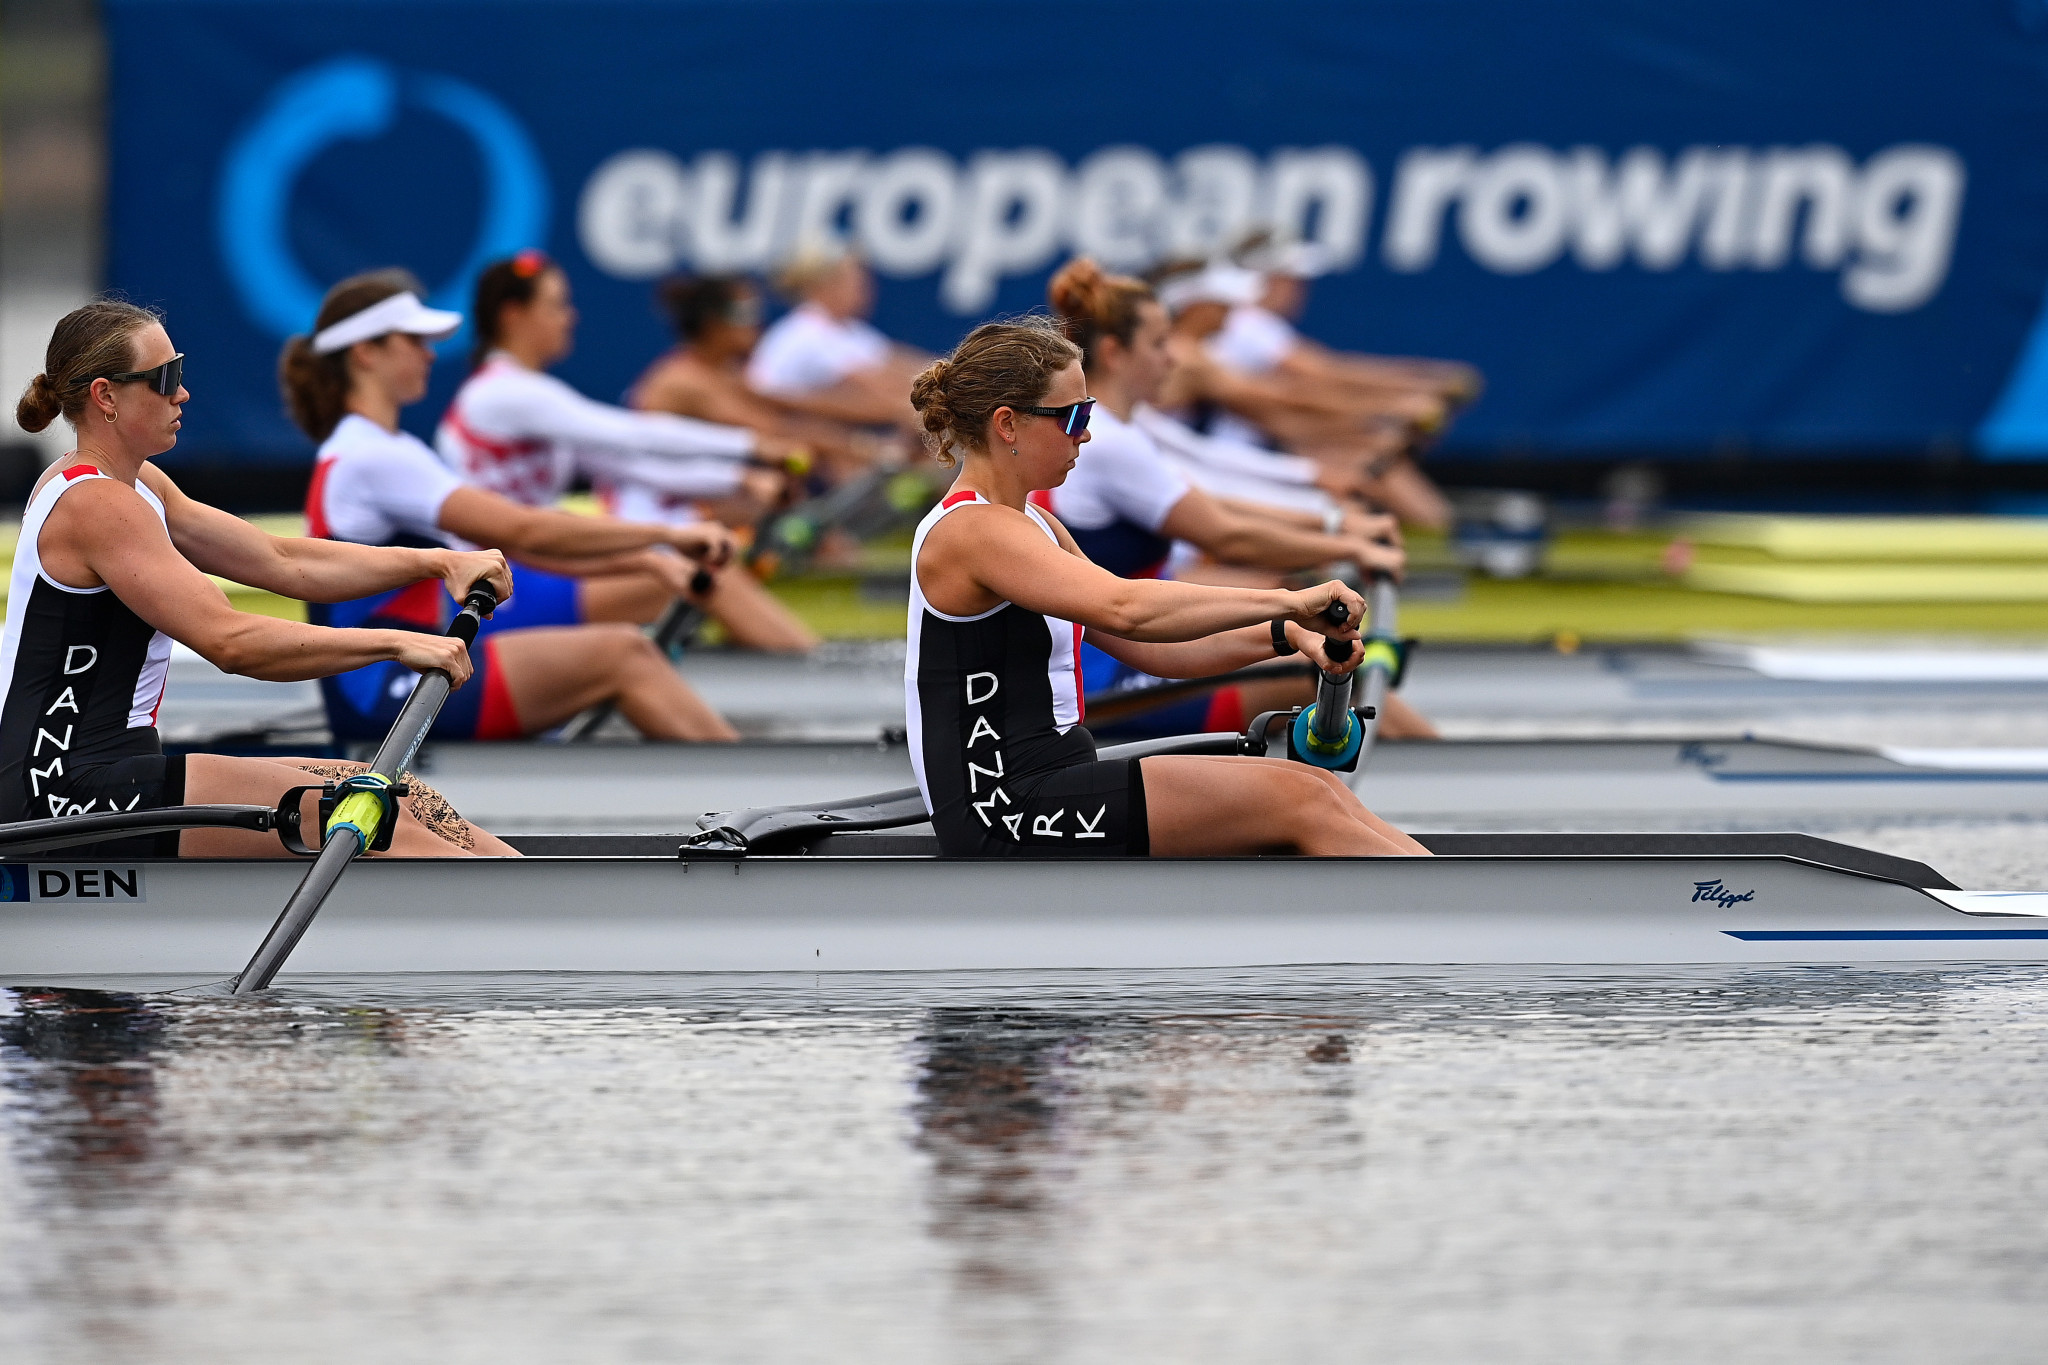 Dominant victories across the classes in first Rowing World Cup in Zagreb